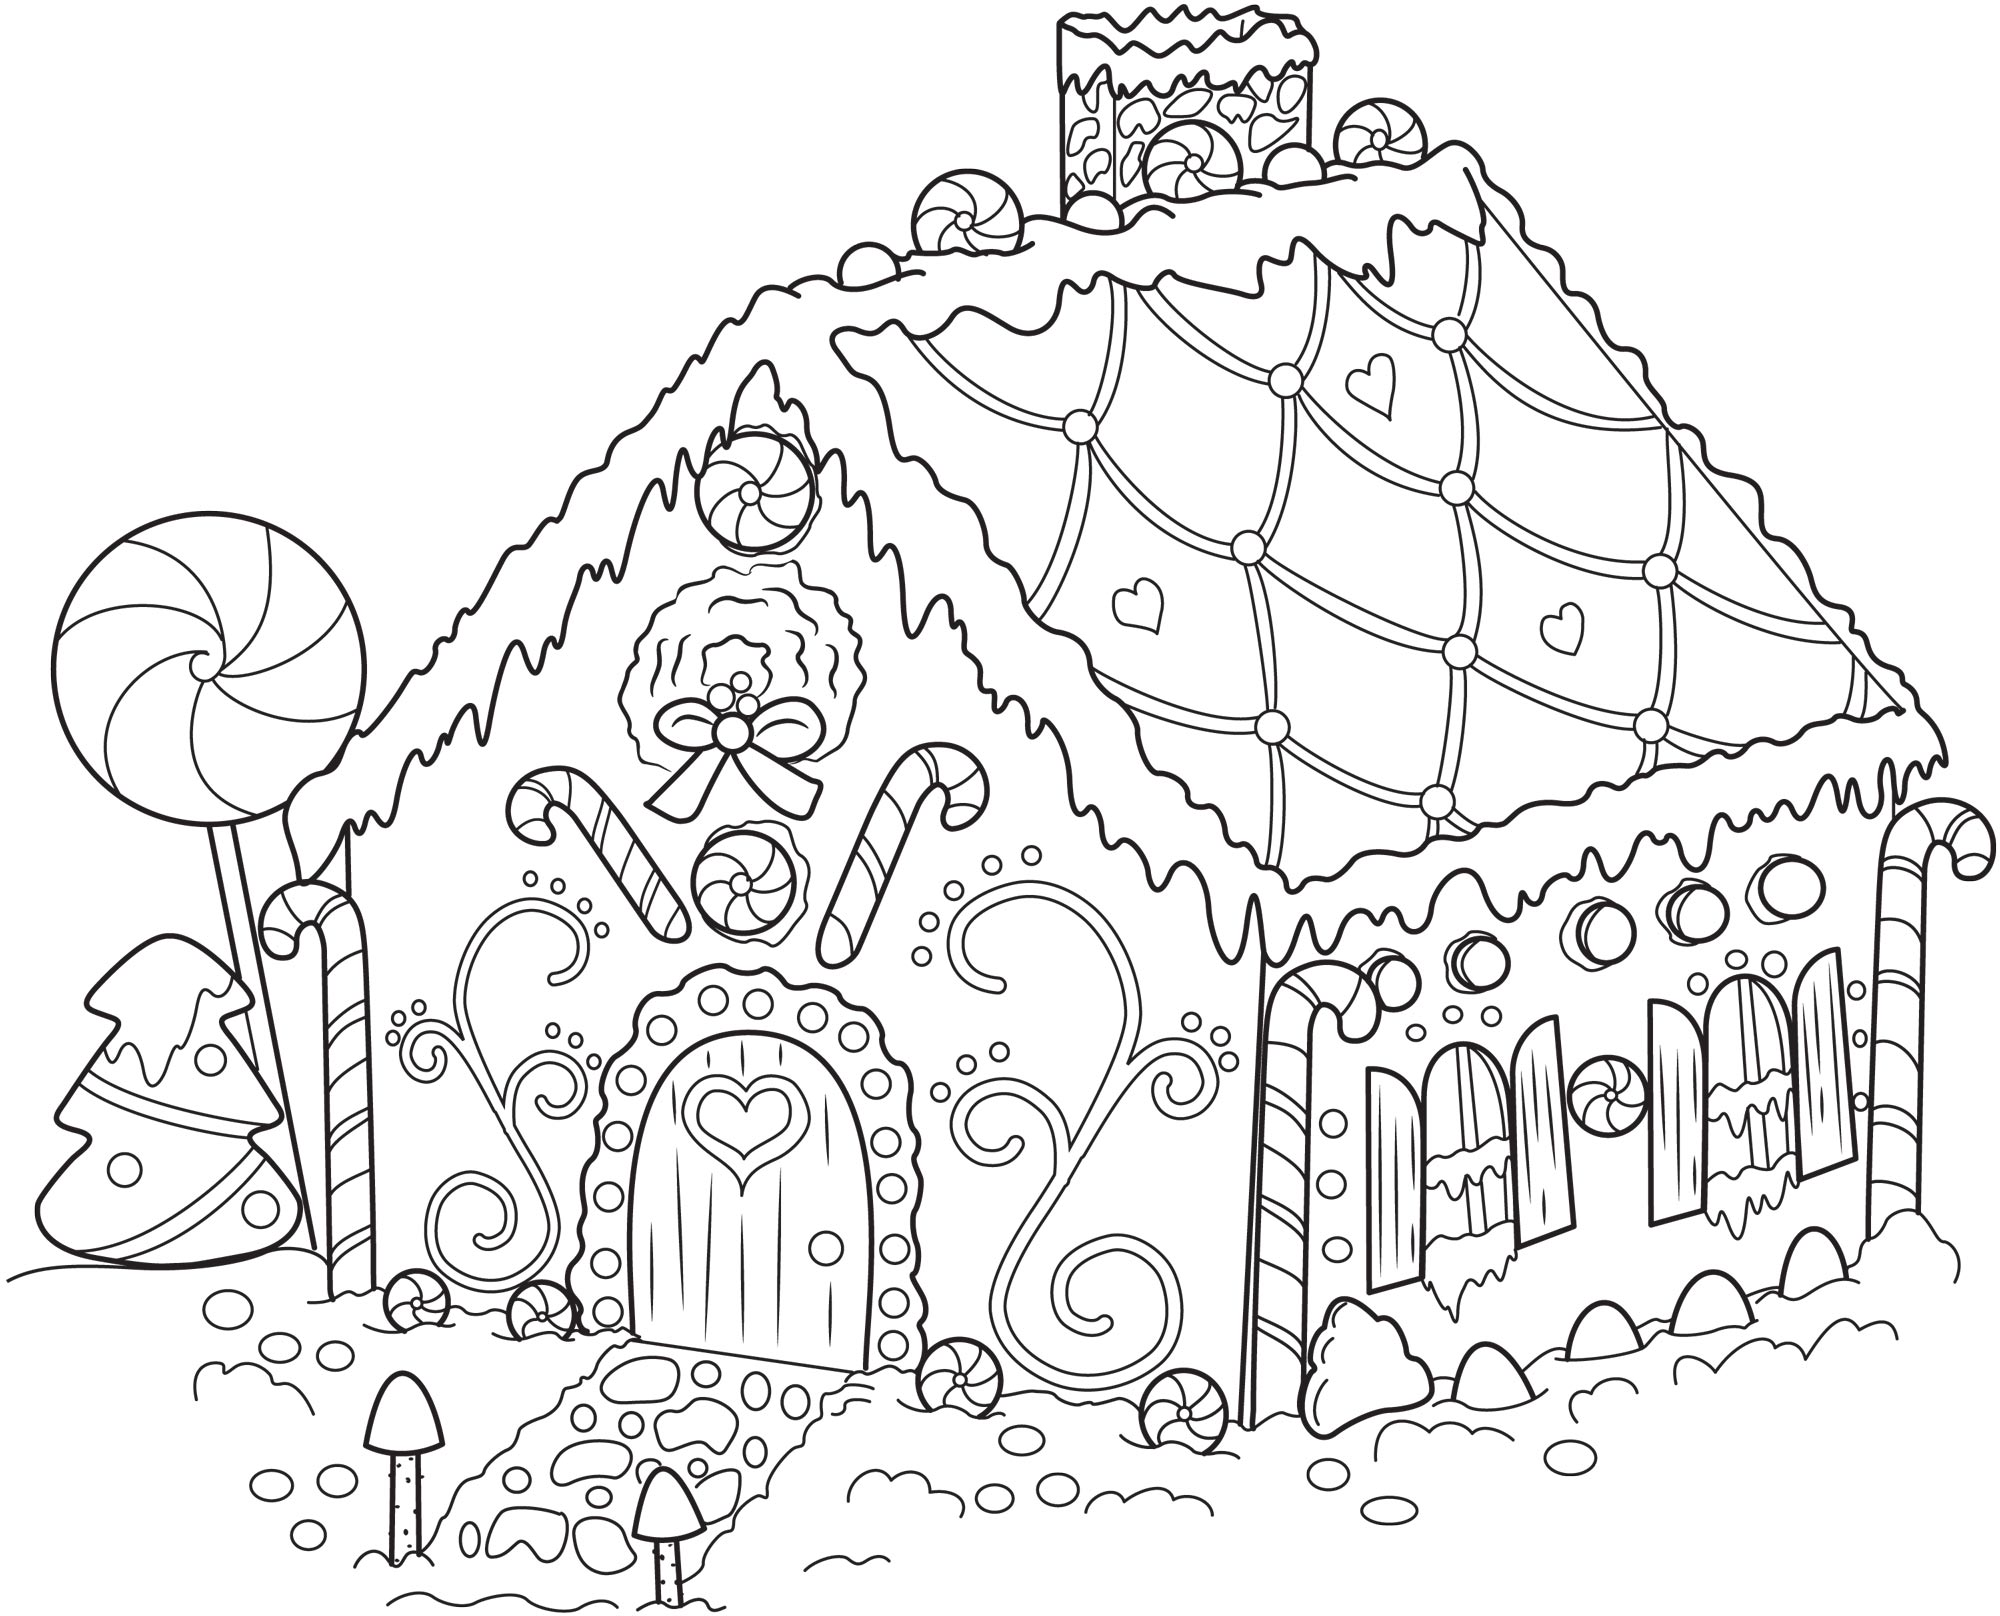 2000x1616 Challenging Coloring Pages Picture Colouring To Cure Challenging